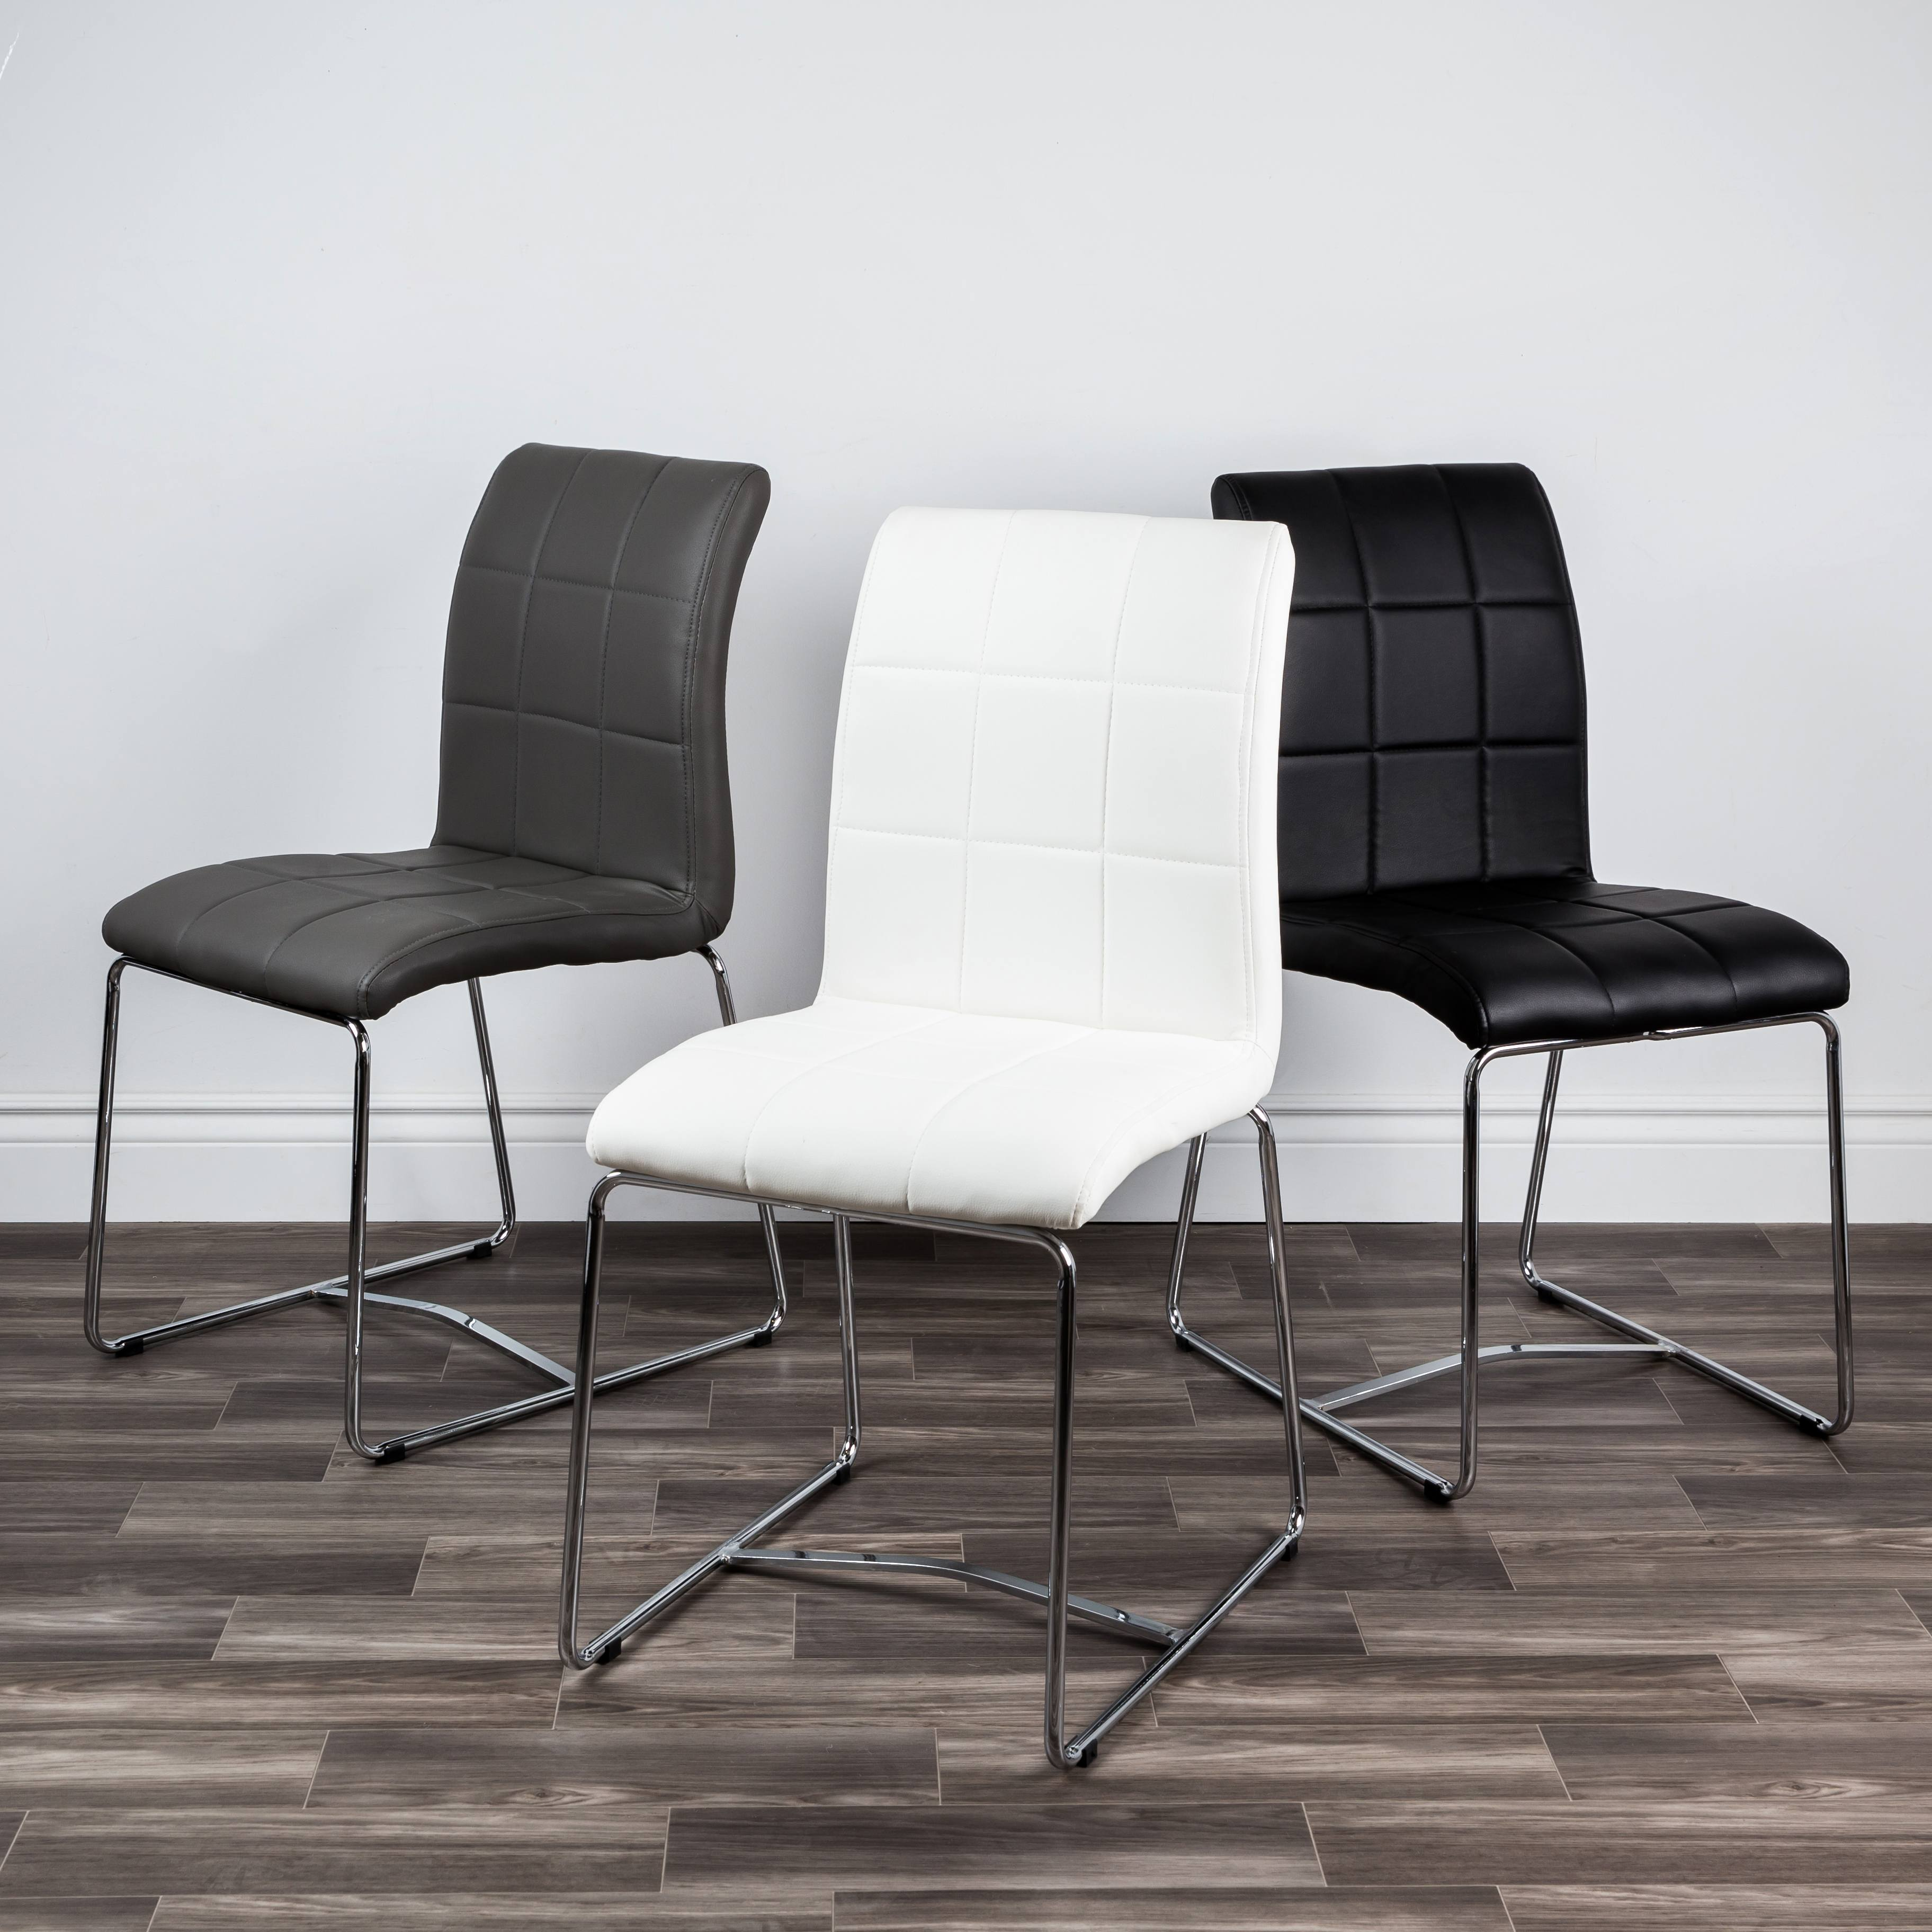 3 faux leather dining chairs, 1 grey, 1 white, 1 black, best-selling furniture